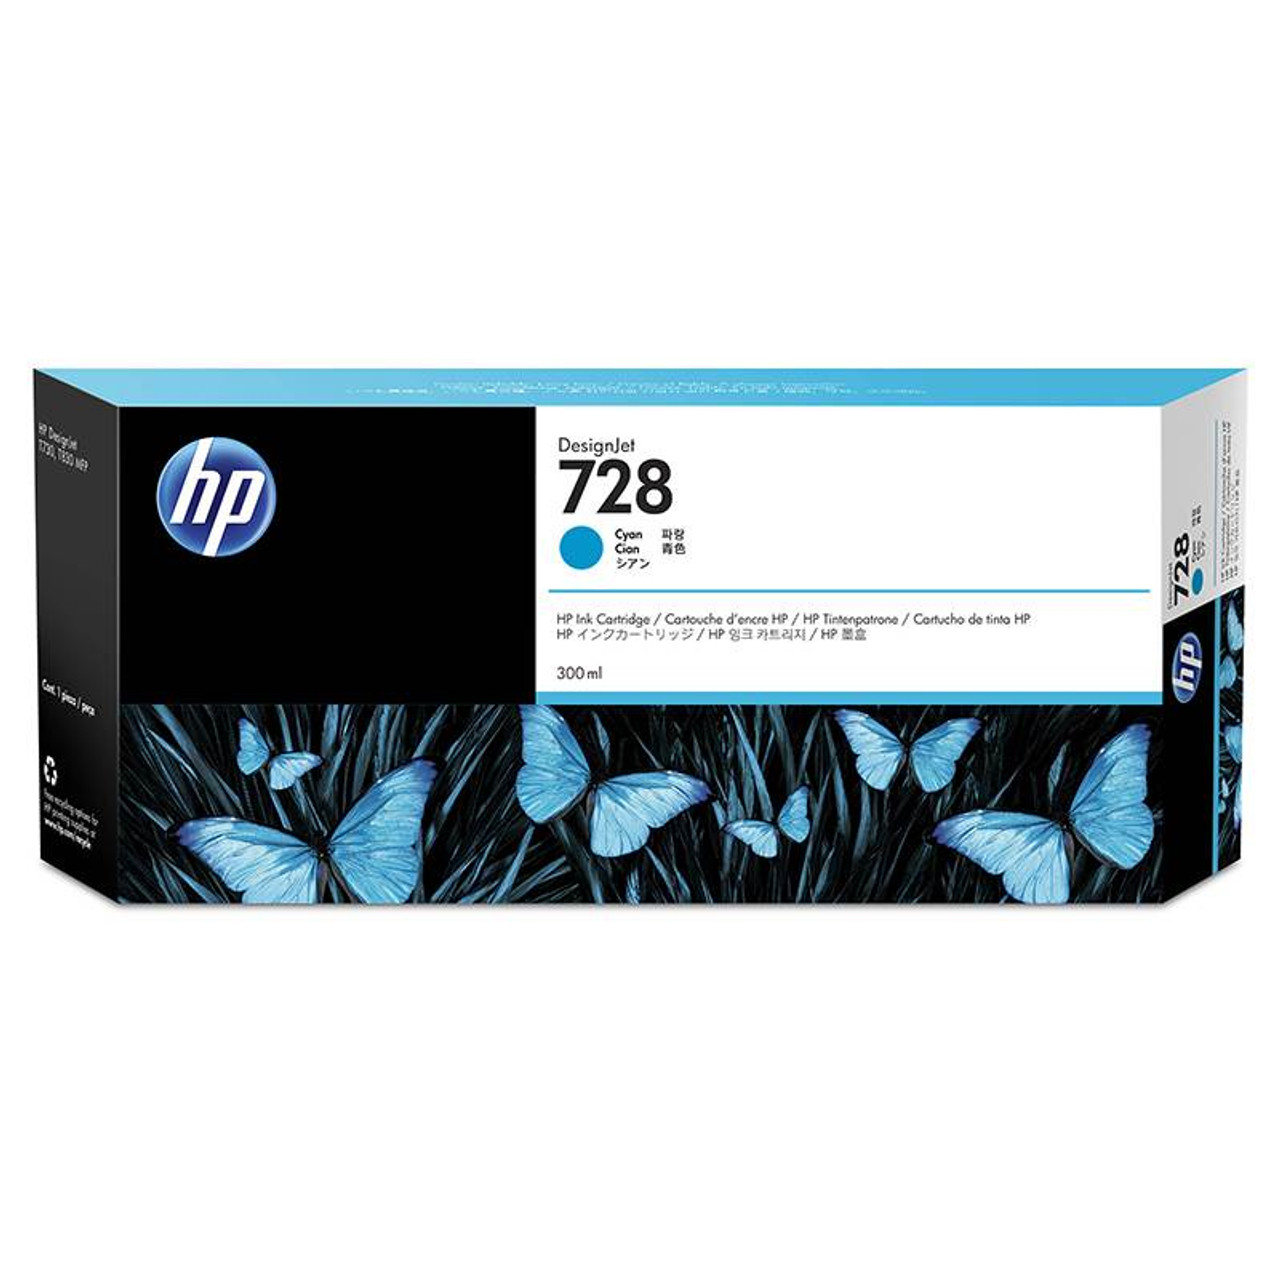 Image for HP728 300ML DesignJet Ink Cartridge - Cyan (F9K17A) CX Computer Superstore